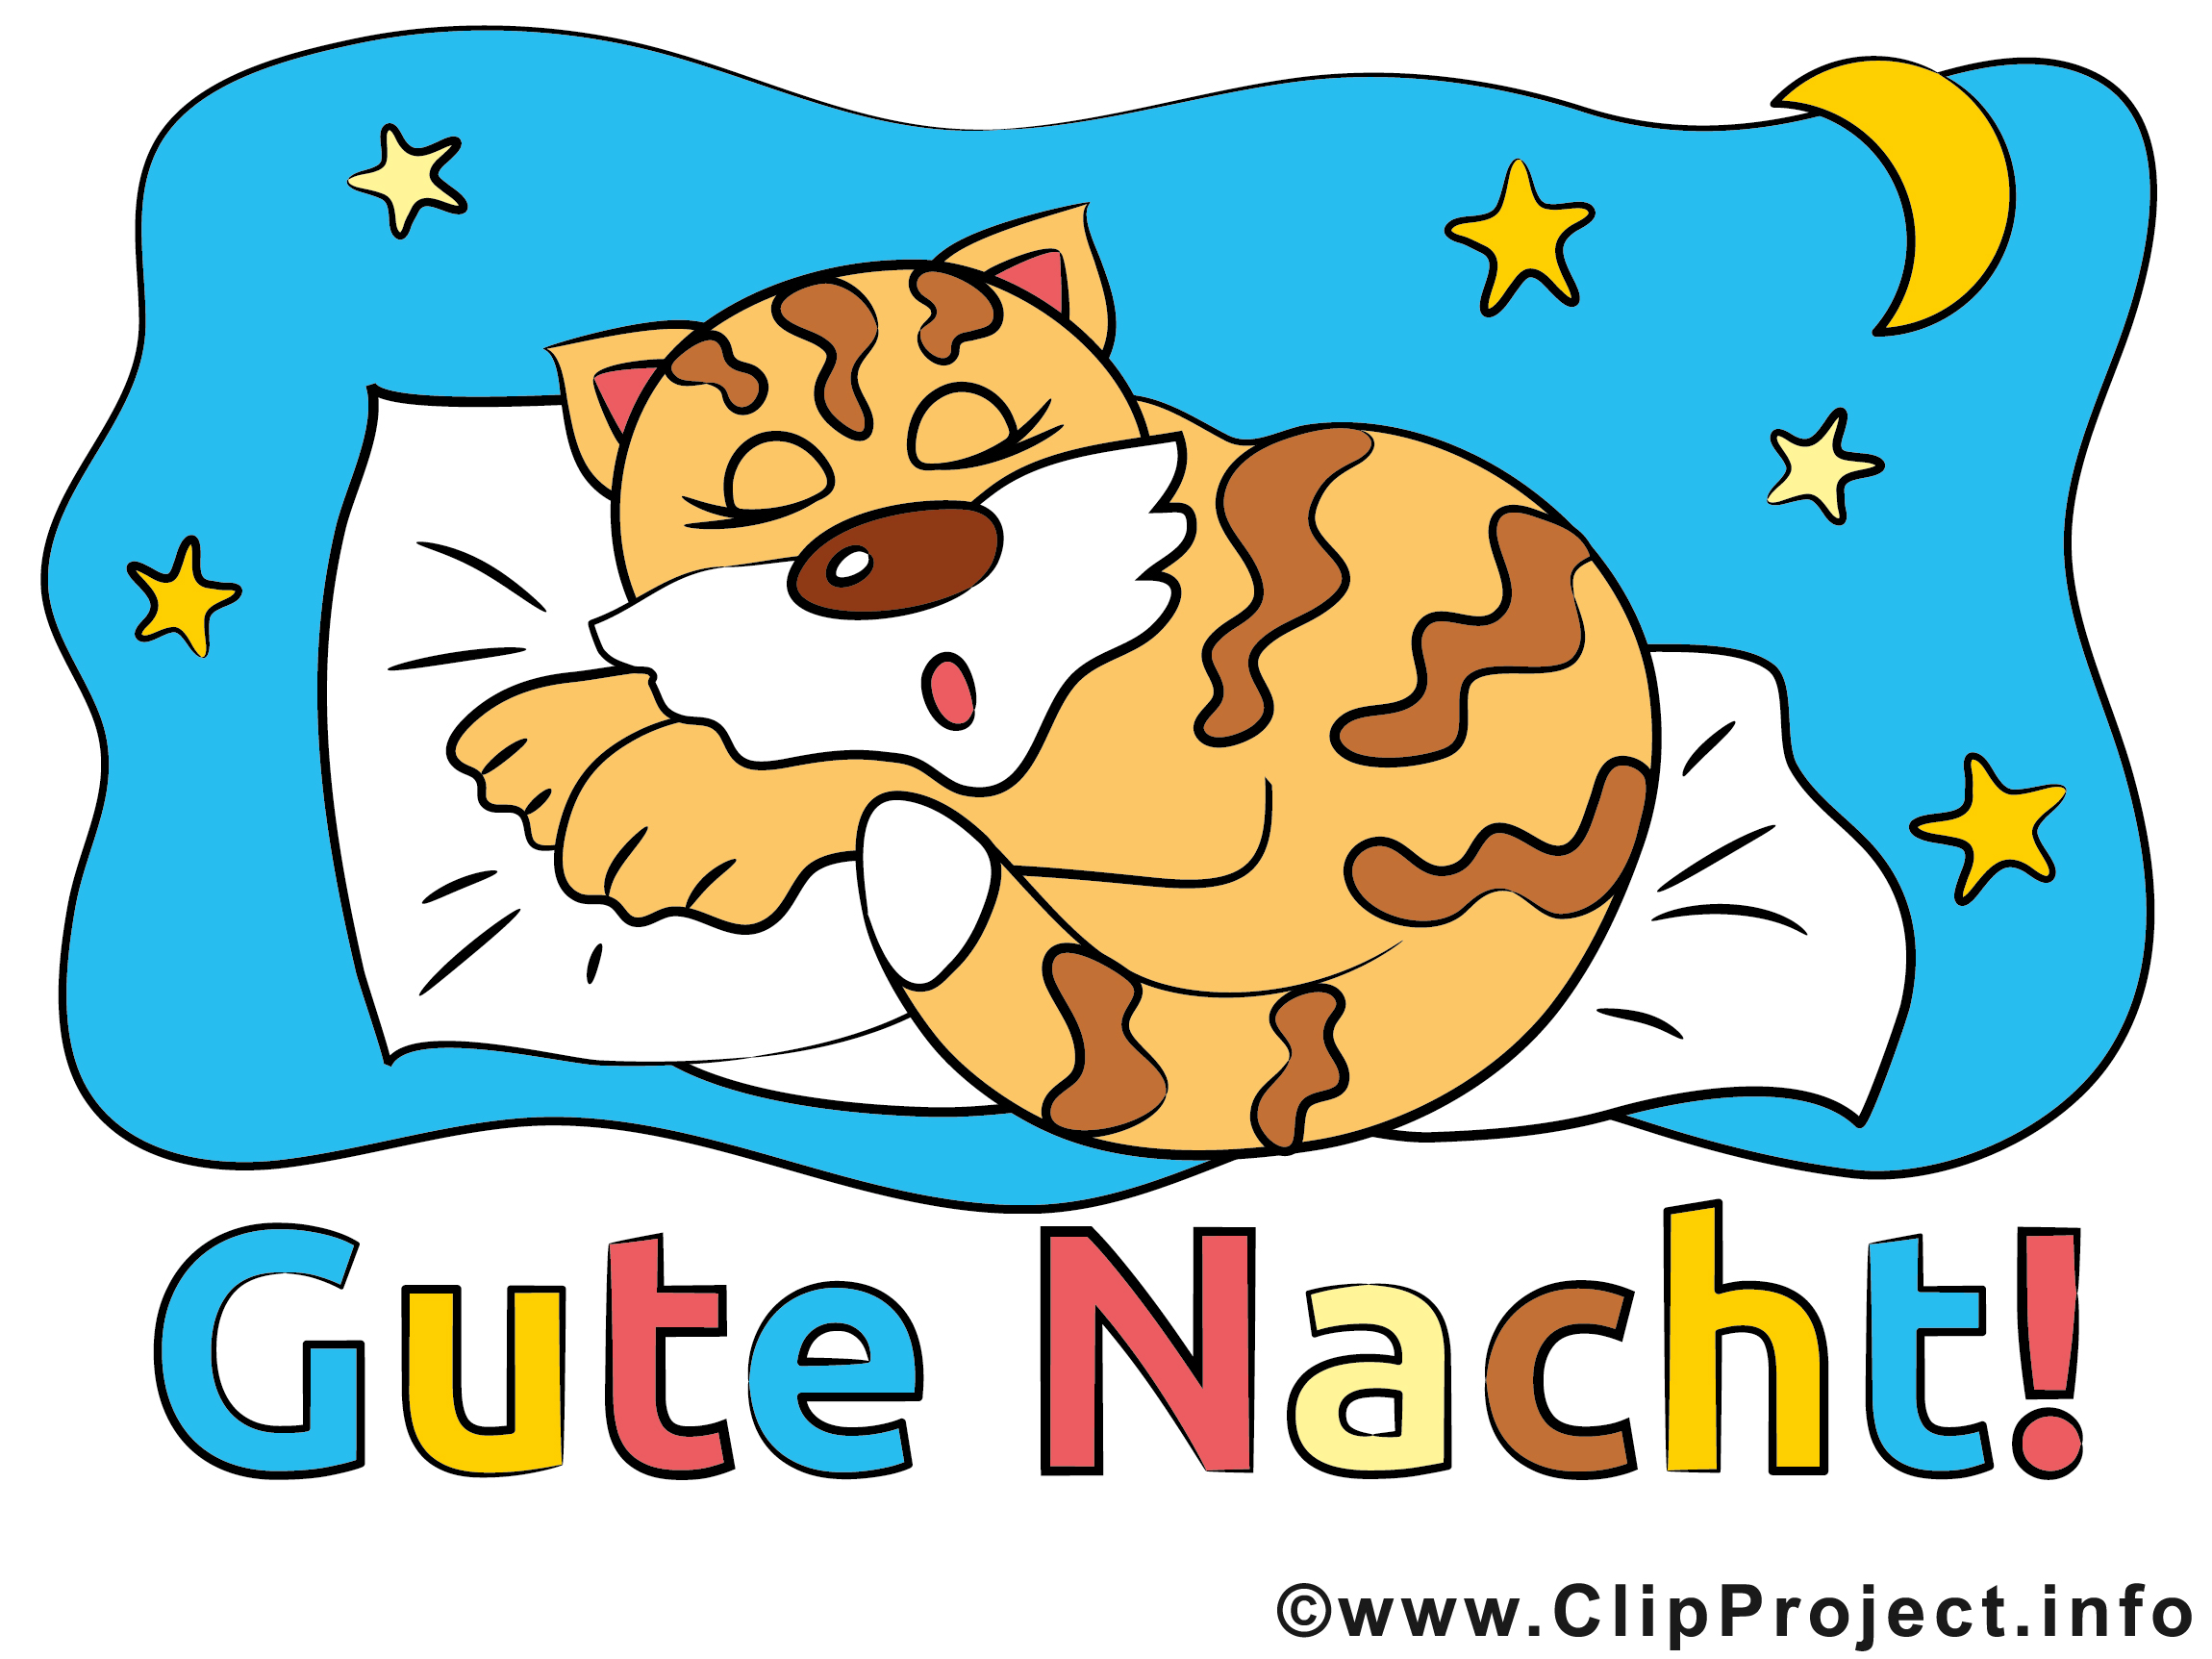 Gute Nacht Bilder download